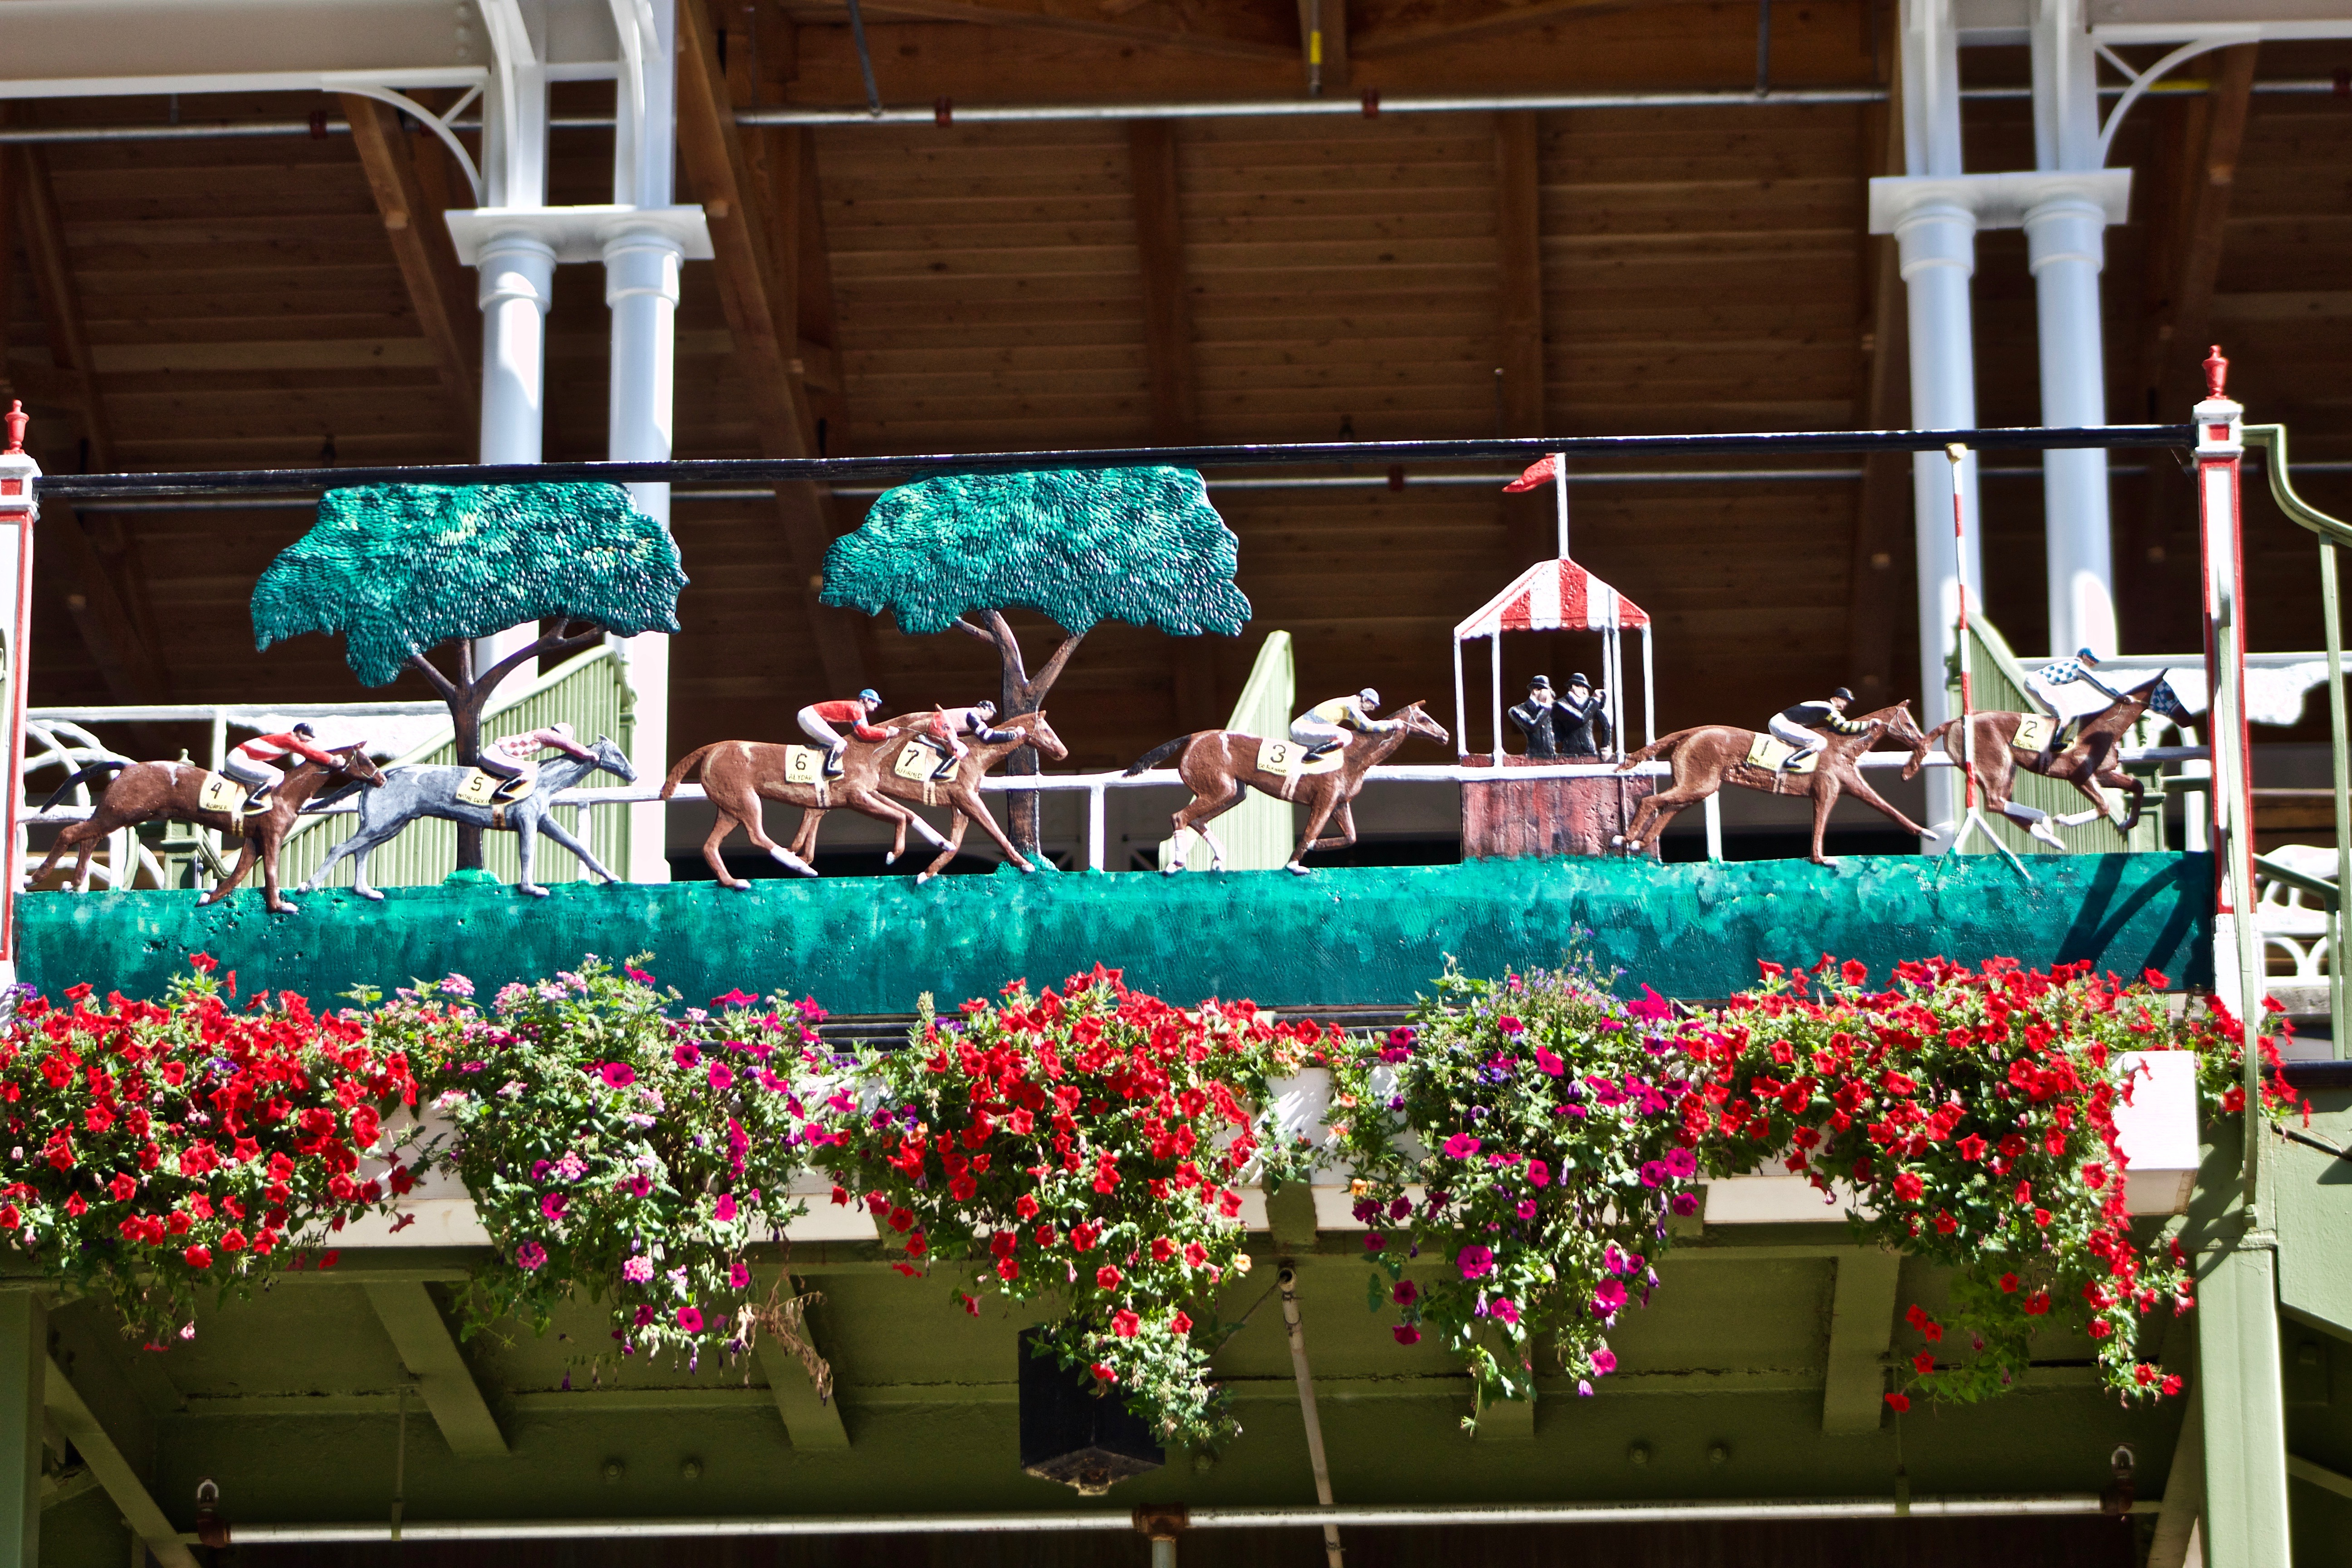 Fact sheet for Opening Weekend of Saratoga Race Course